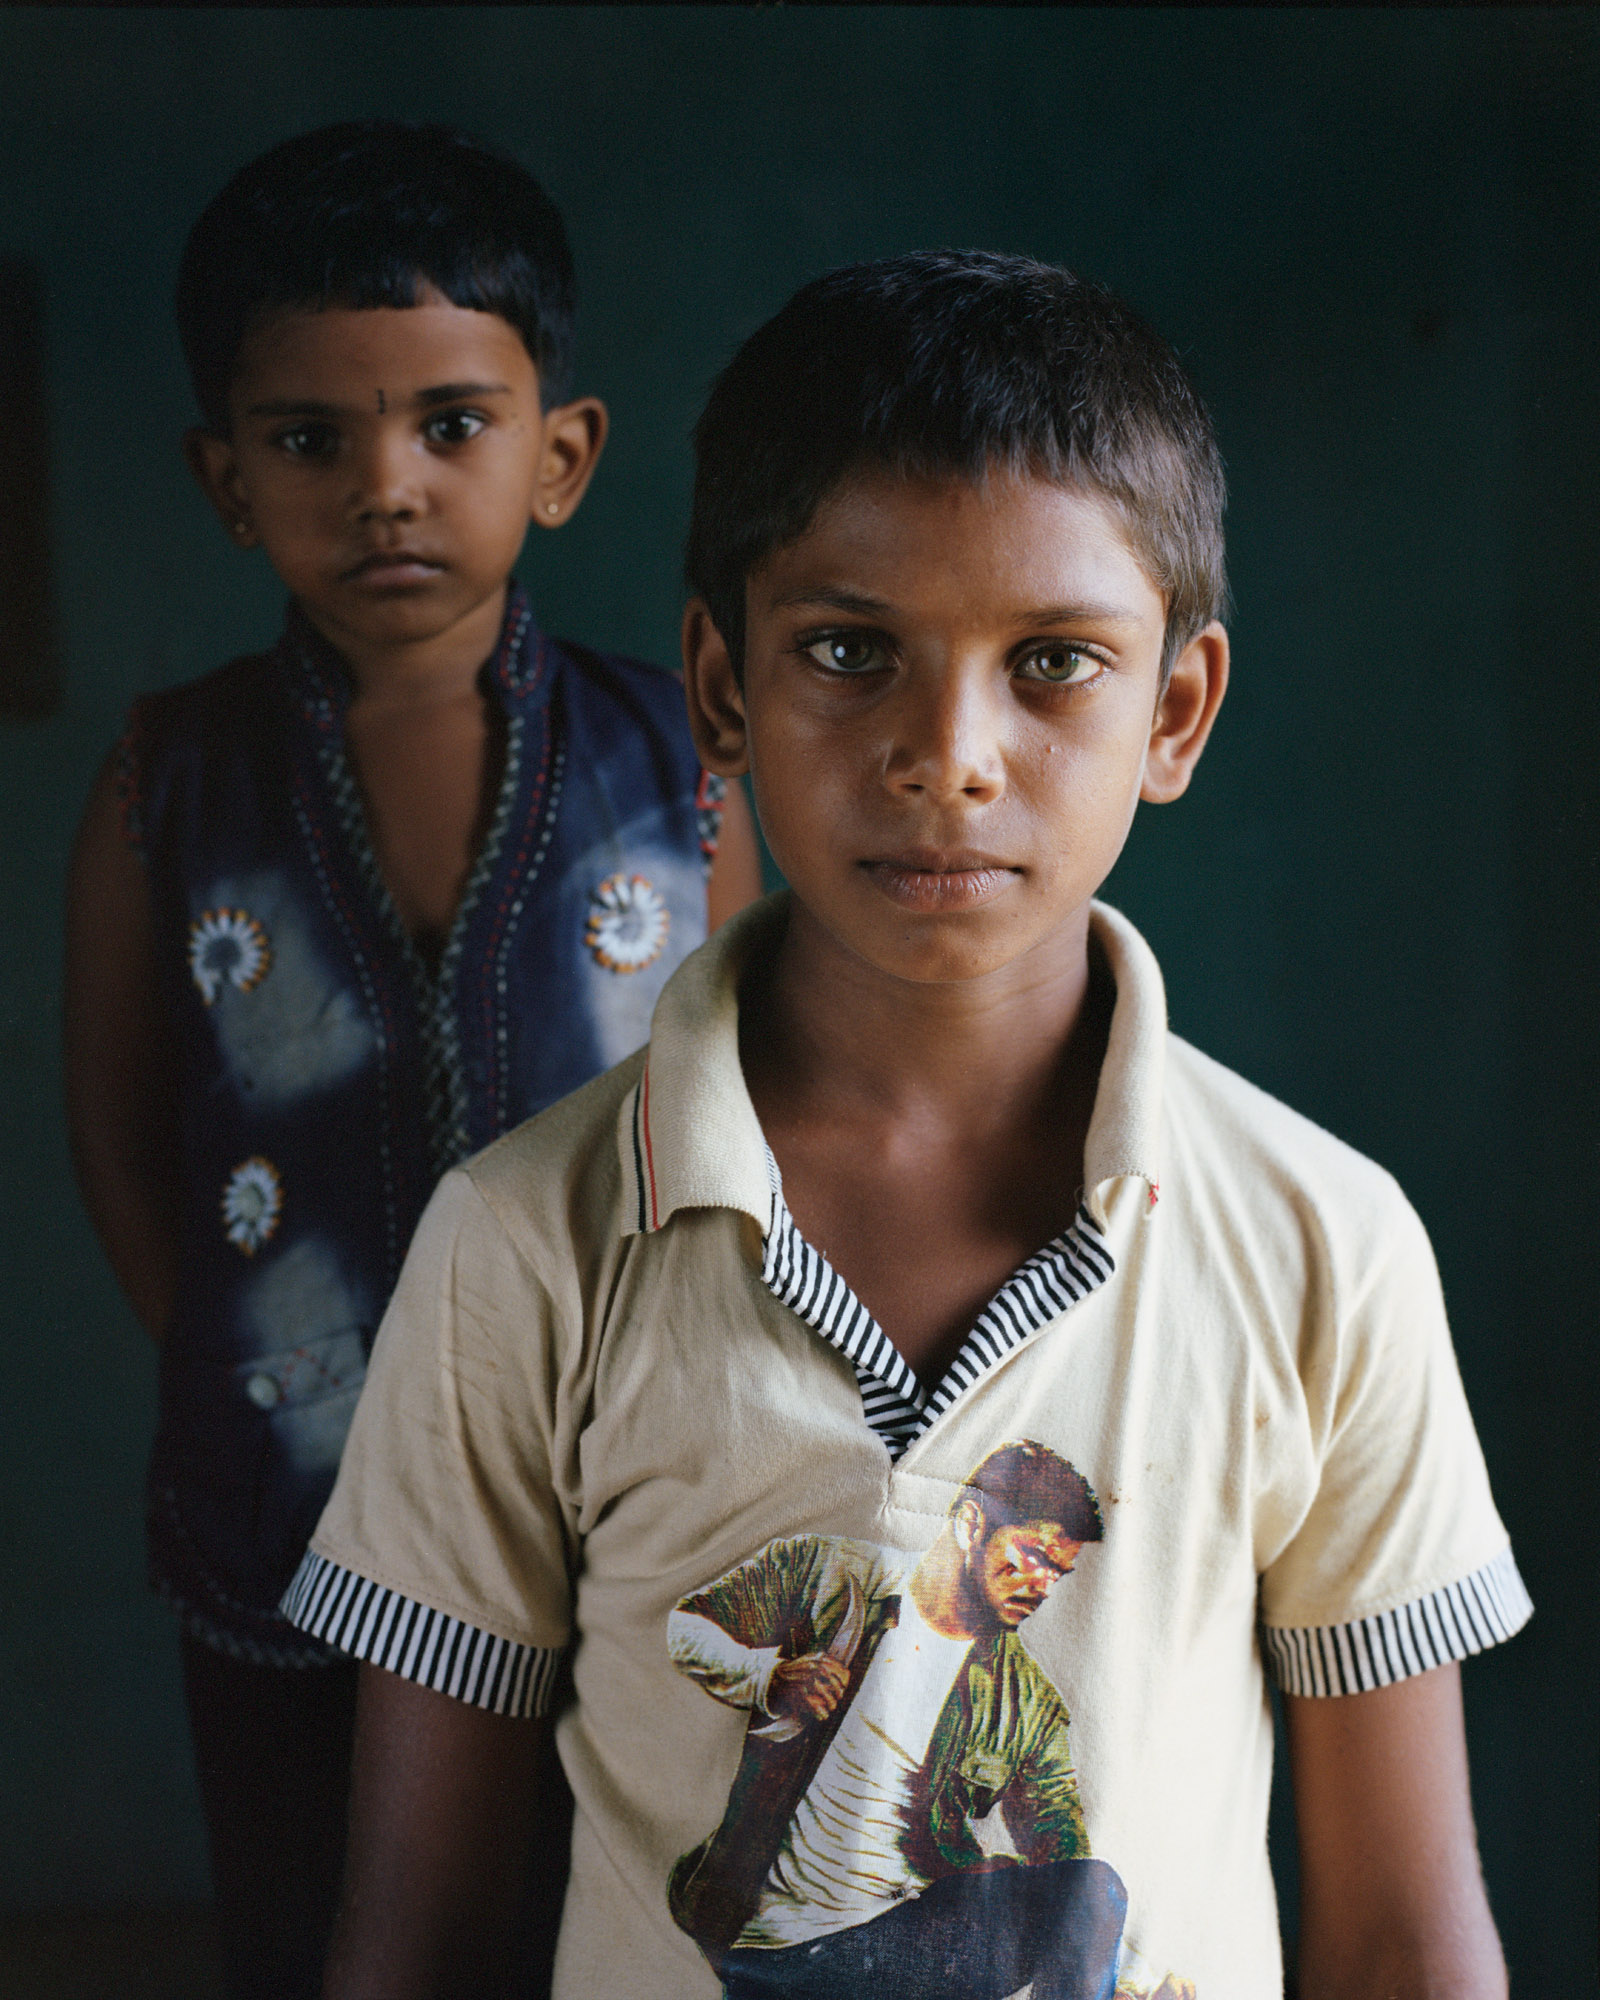 Tamil children, a new generation growing up without war. The future is unpredictable for them.